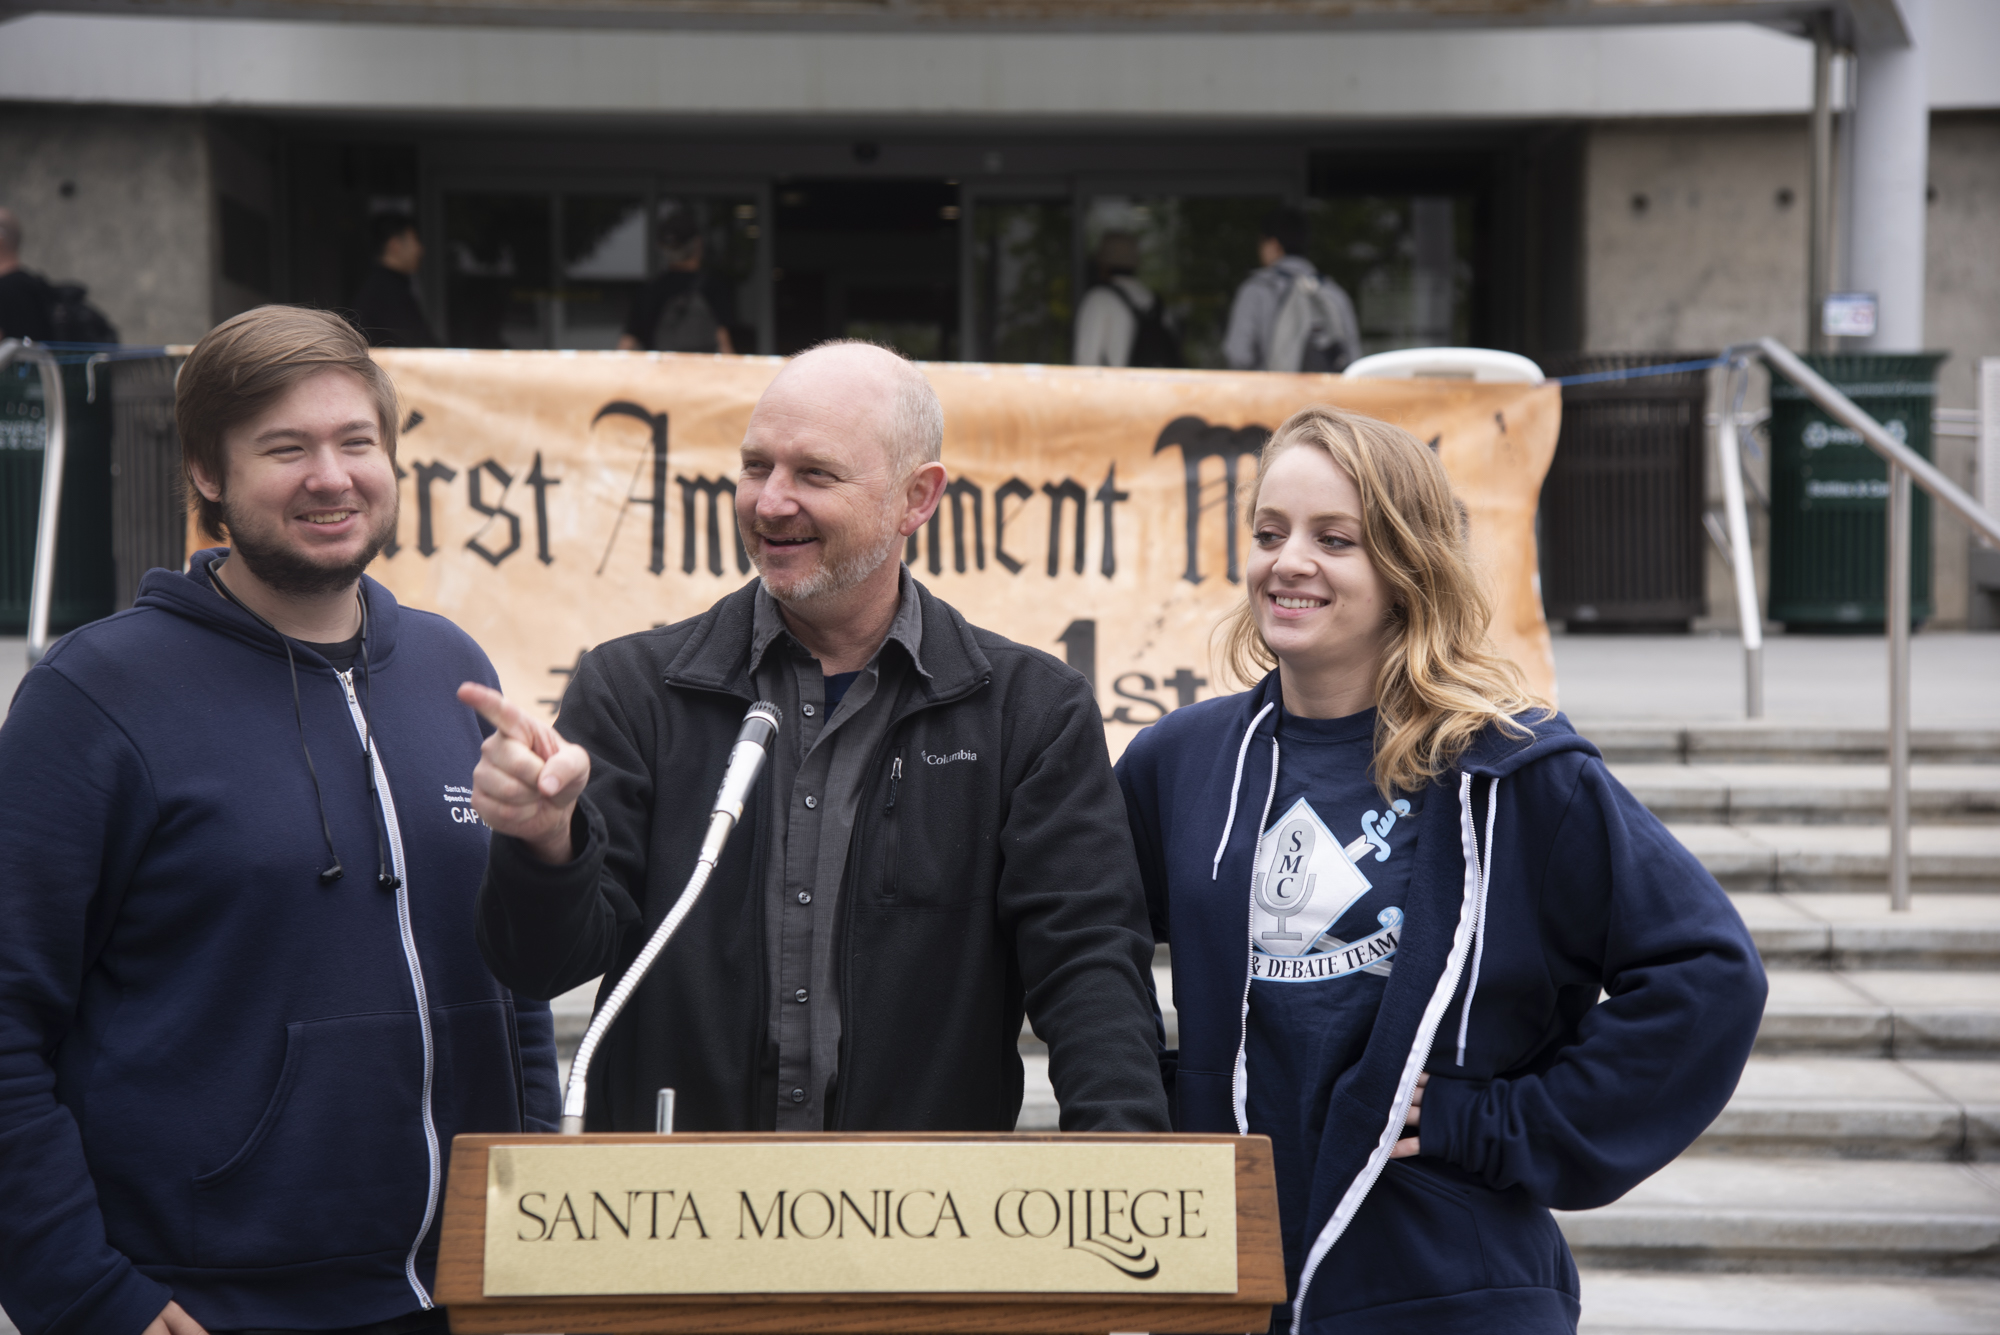 On May9 2019 at Santa Monica college in front of the library it was first amendment  mouth he Male debater was Dominic Smith, 25 econ major. The female debater was Shaindi Schwebel, 24 anthropology major. The teacher was Nate Brown and he is a communications professor